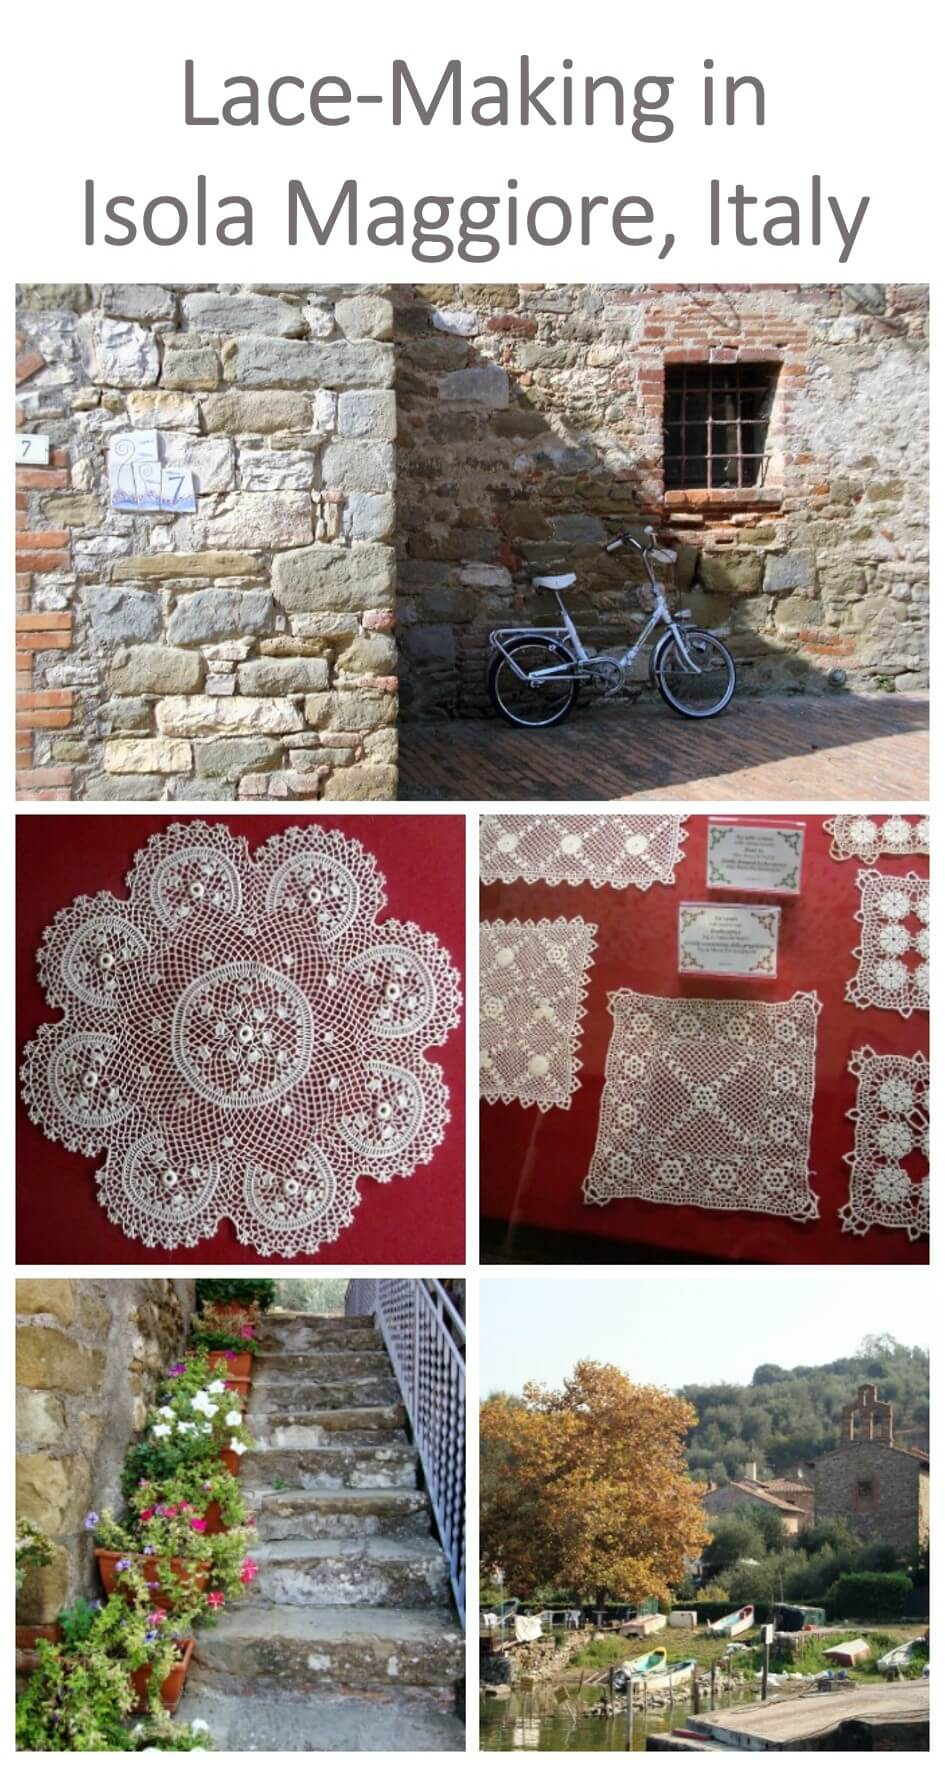 Come on a virtual exploration of Isola Maggiore and learn about the rich history of their Irish lace making tradition.